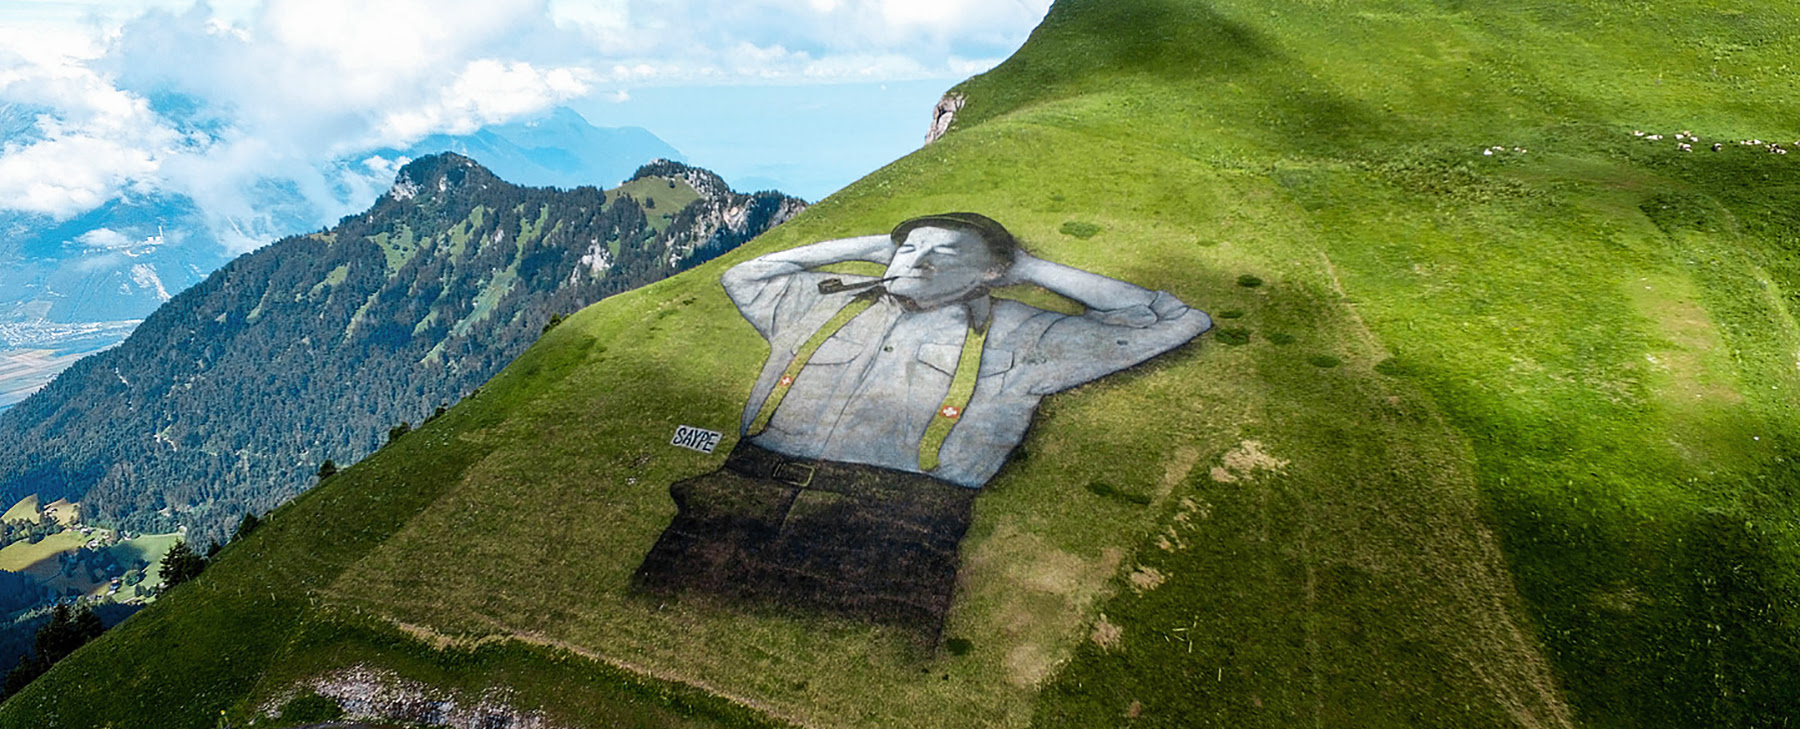 saype draws 10,000 square meter man in the mountains of leysin, switzerland